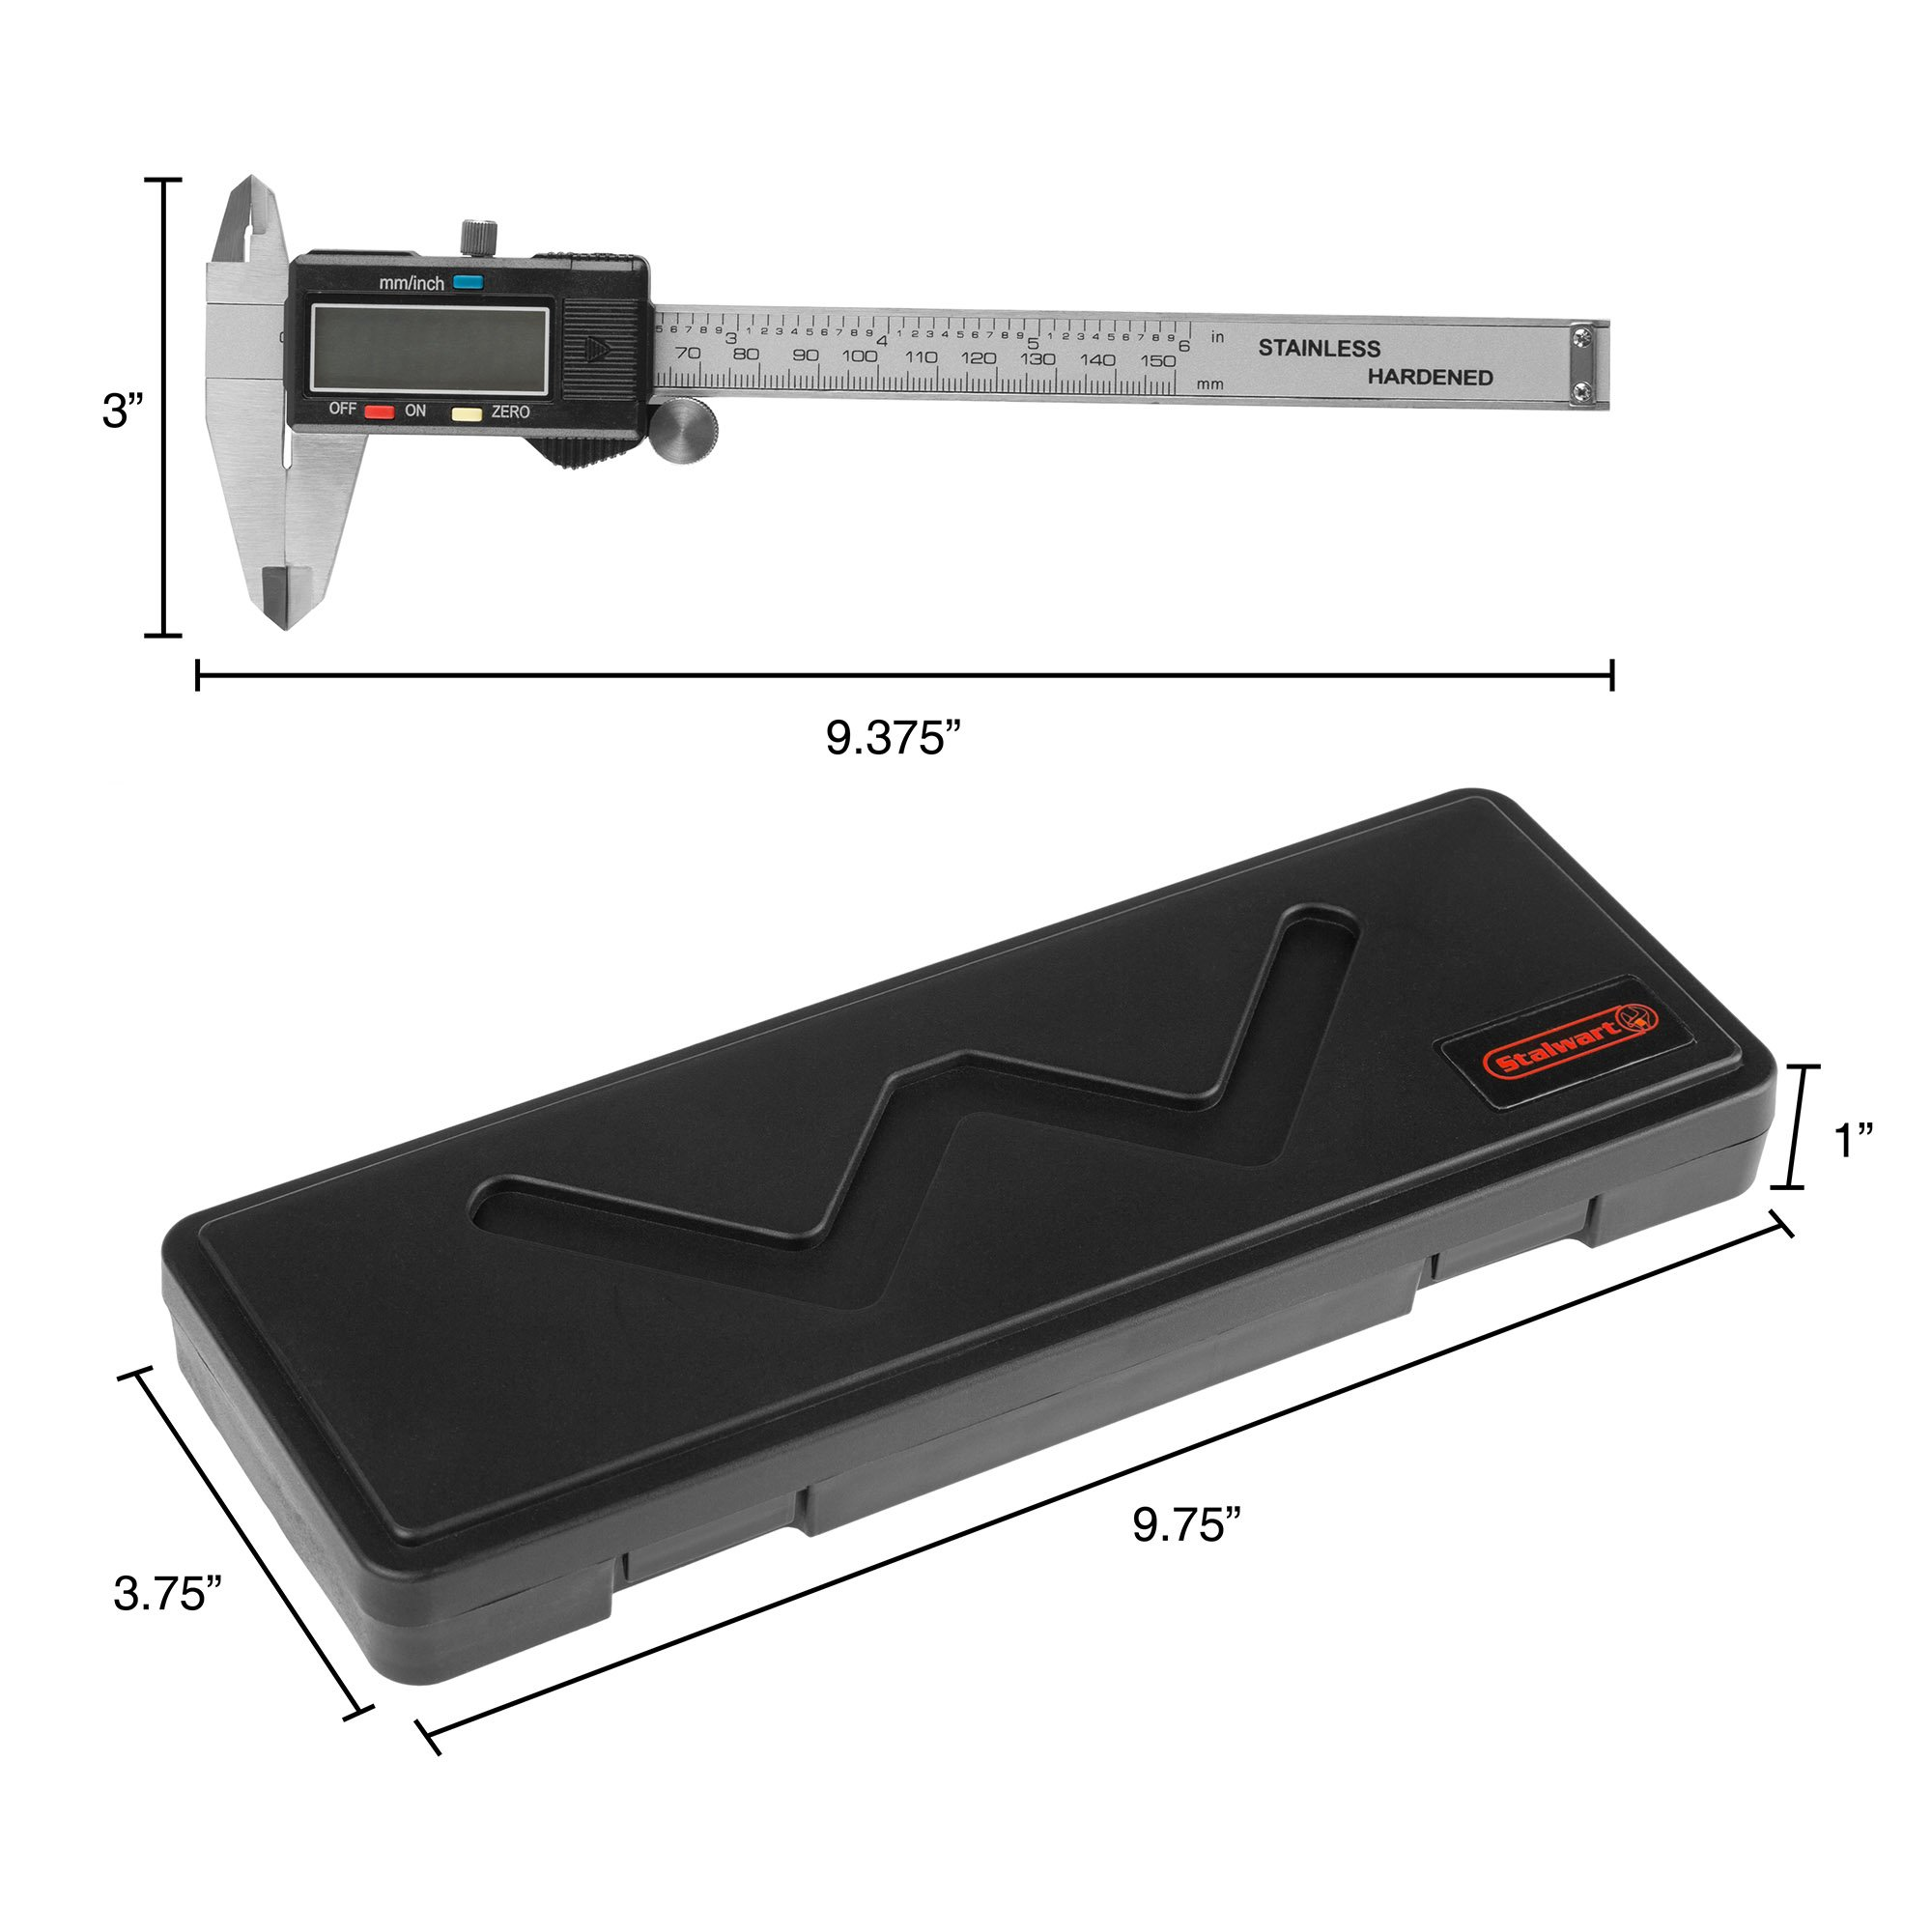 Electronic Digital Caliper, Stainless Steel with Extra Large LCD Screen and Inch/Metric Conversion- Measures Up to 6 Inch (0-150mm) by Stalwart by Stalwart (Image #2)